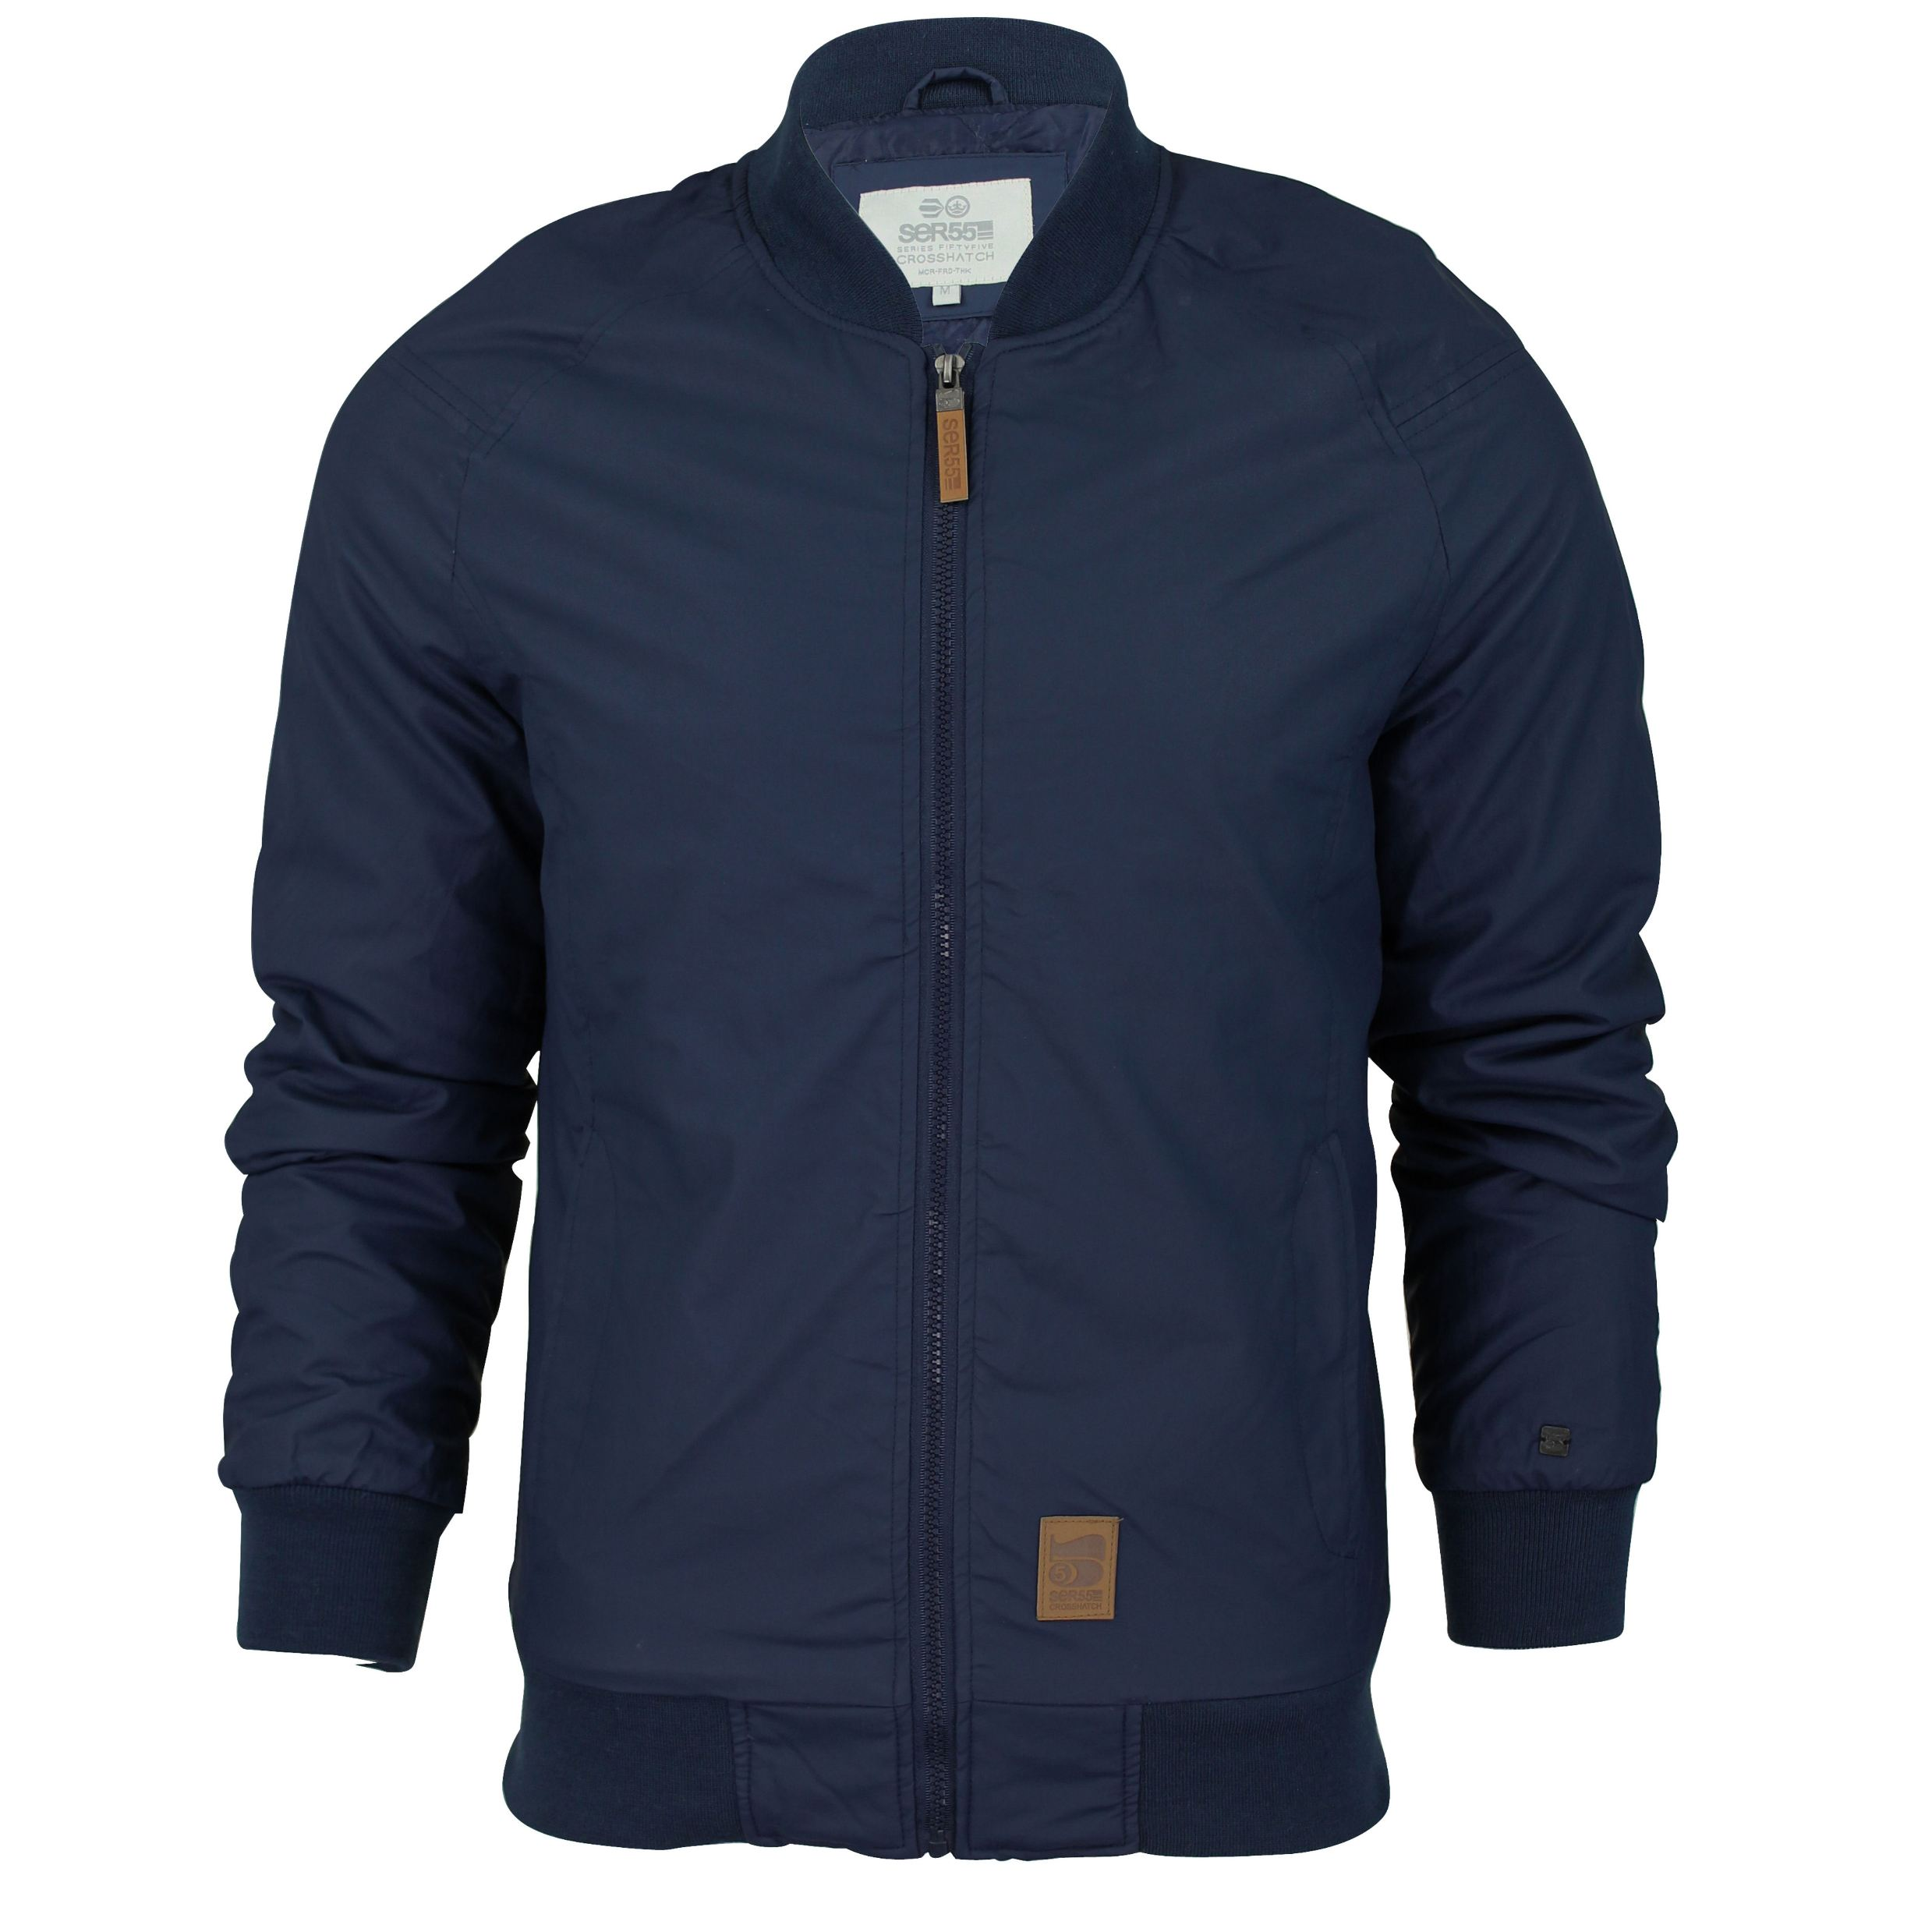 Big and Tall Cotton Jackets (15 Items) Big and Tall Cotton Jackets are considered as prominent outerwear clothing for big mens. Due to its superior reliability and .